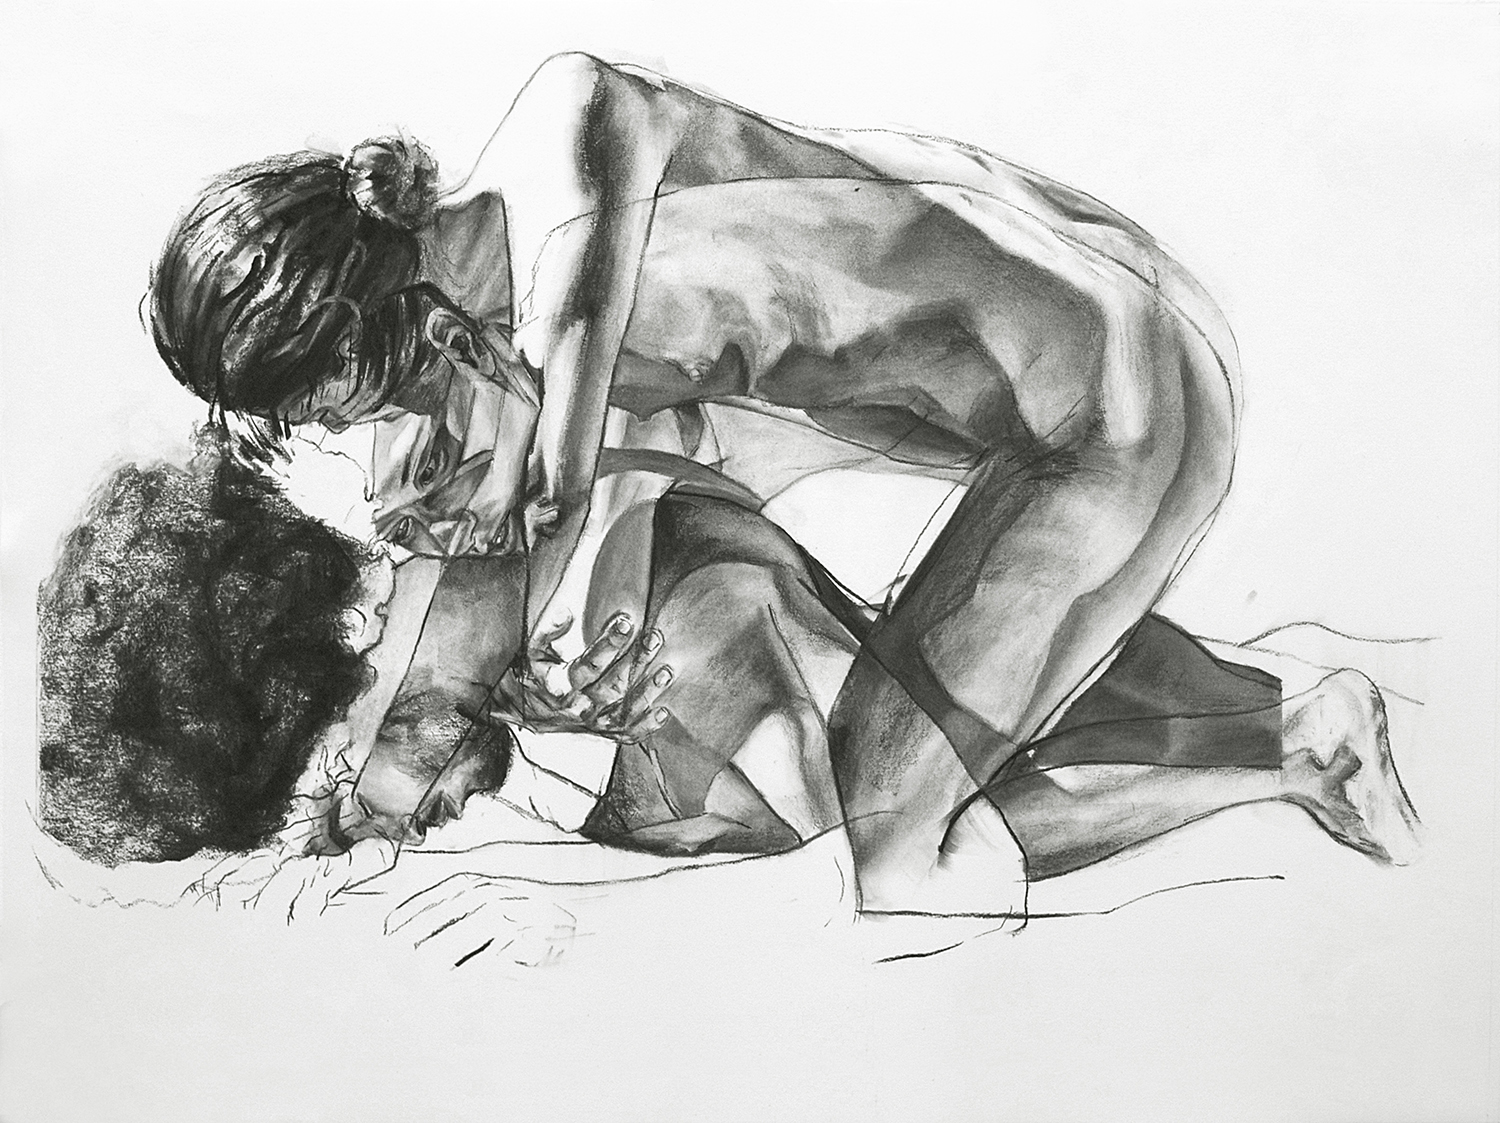 UNTITLED, 2015, charcoal on paper, 30 x 40 inches (76.2 x 101.6 cm).